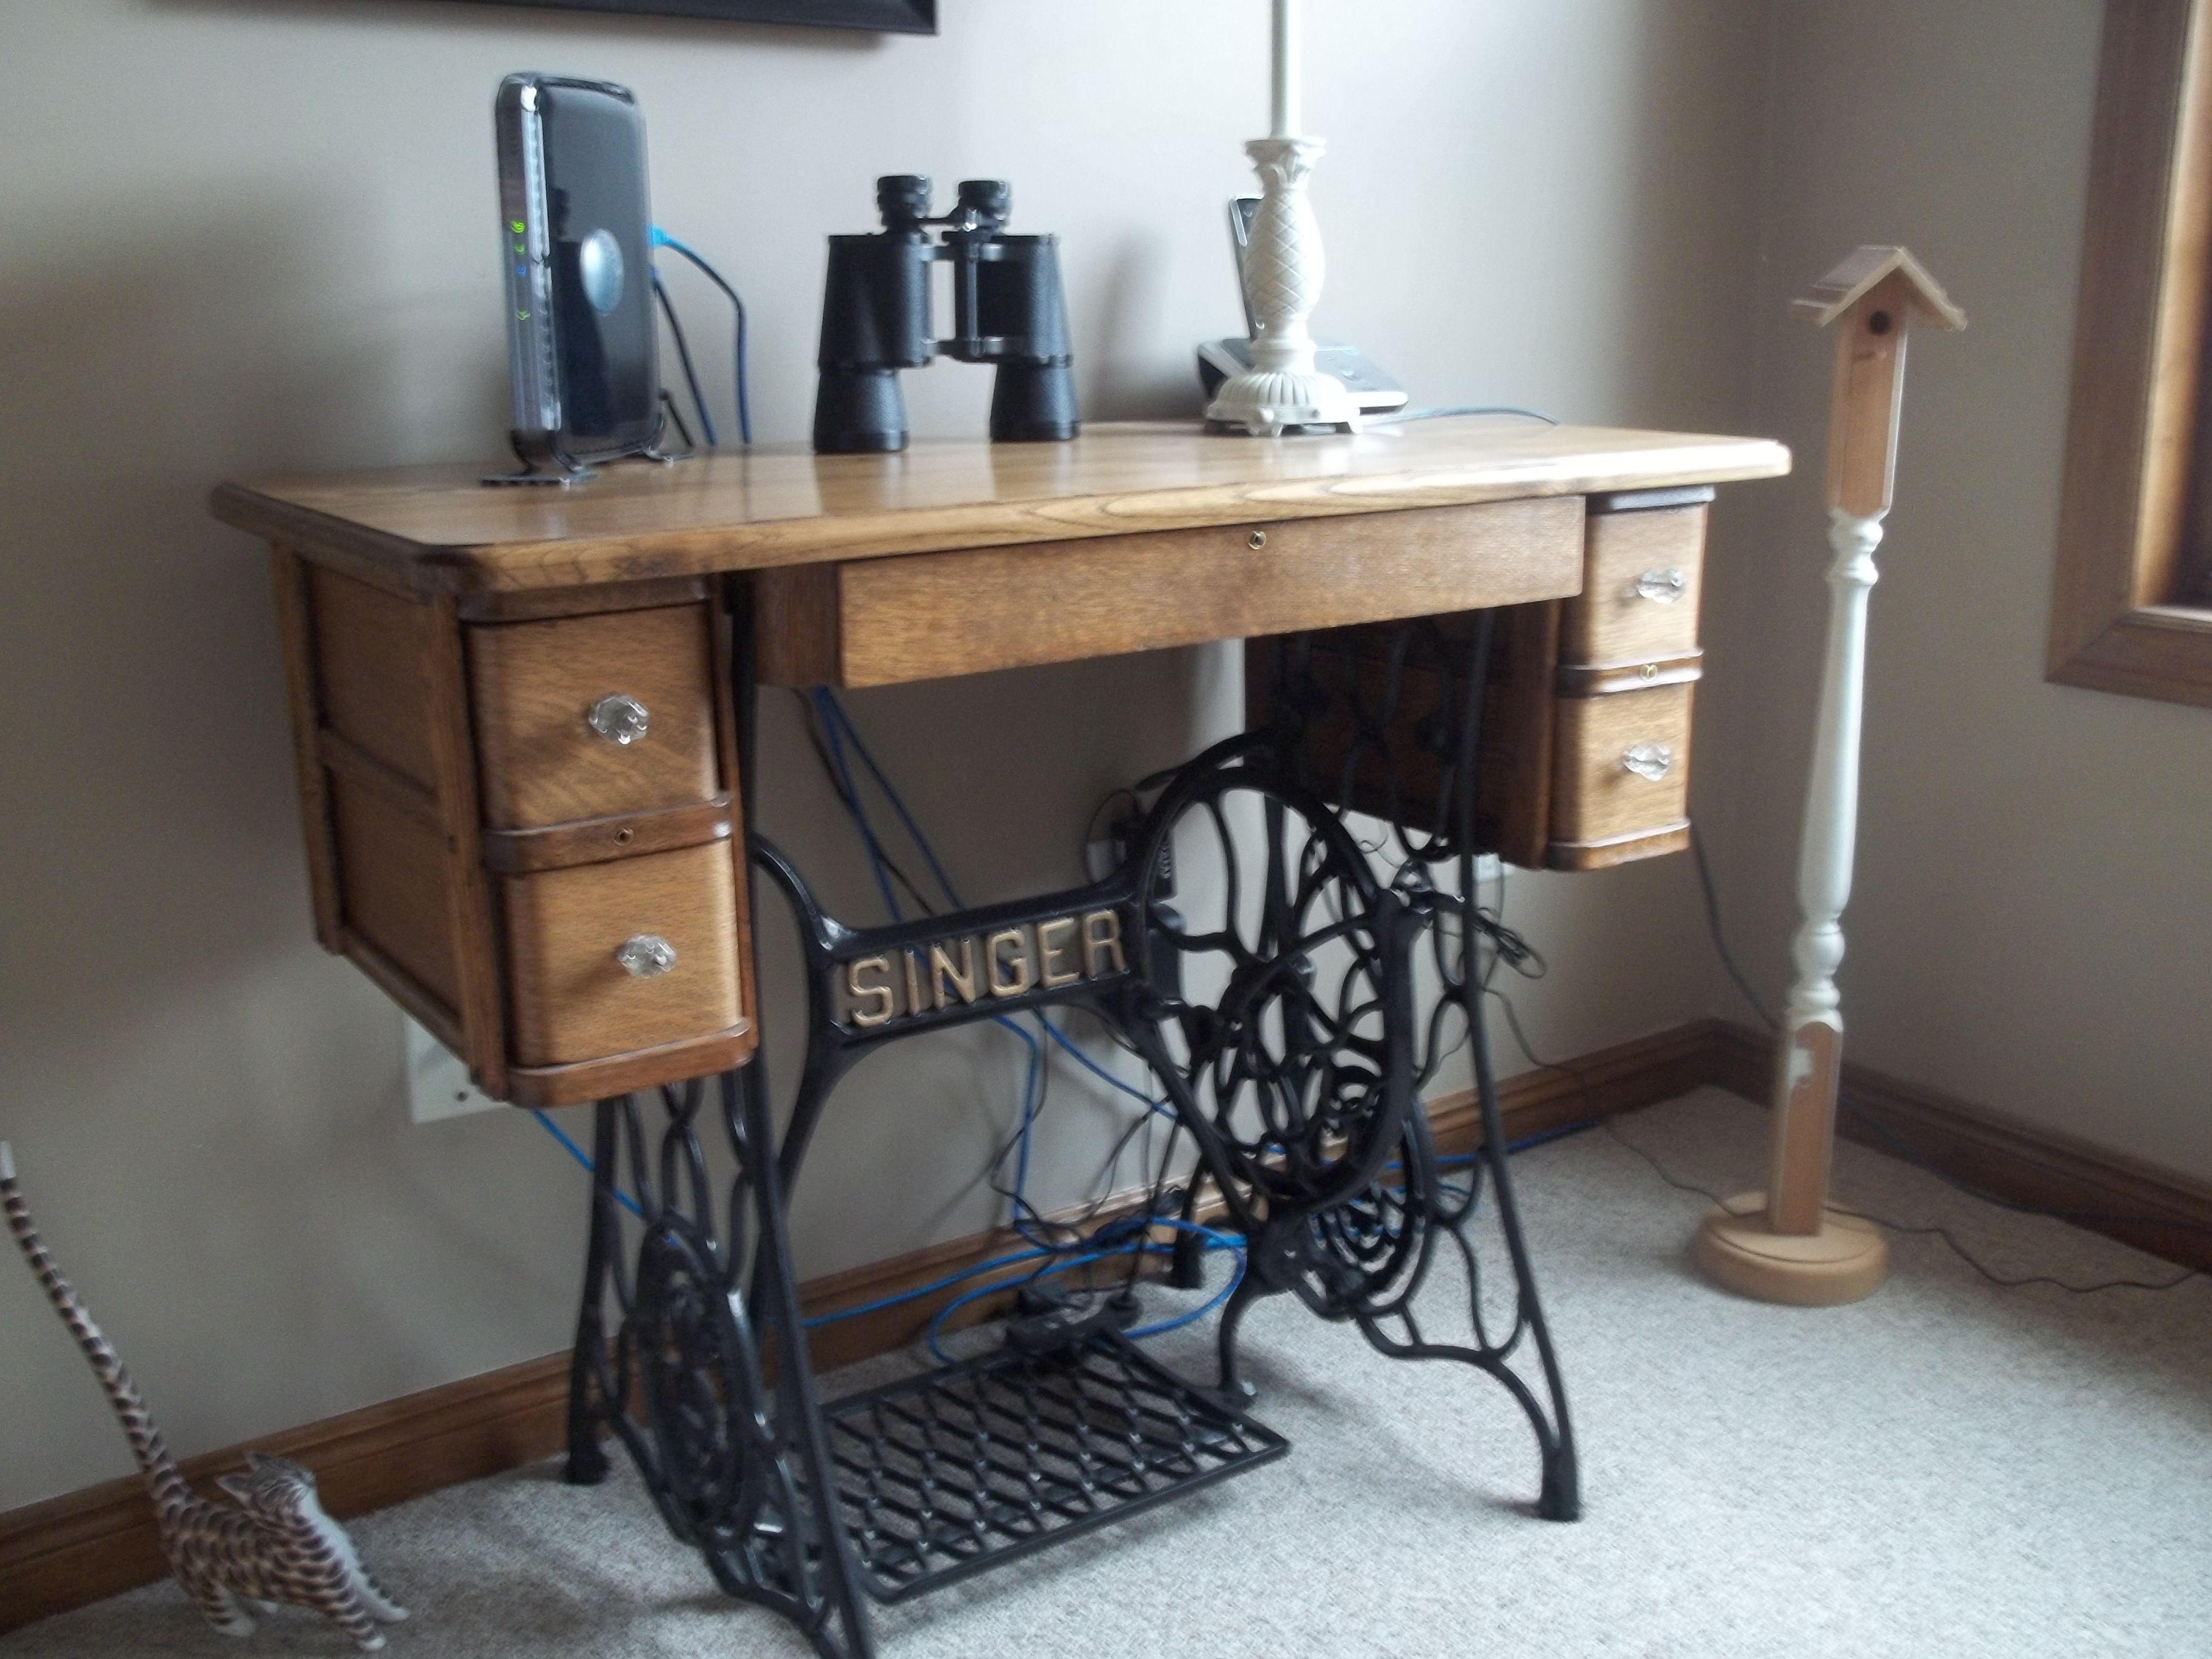 Old singer sewing cabinet made into decorative display table ...